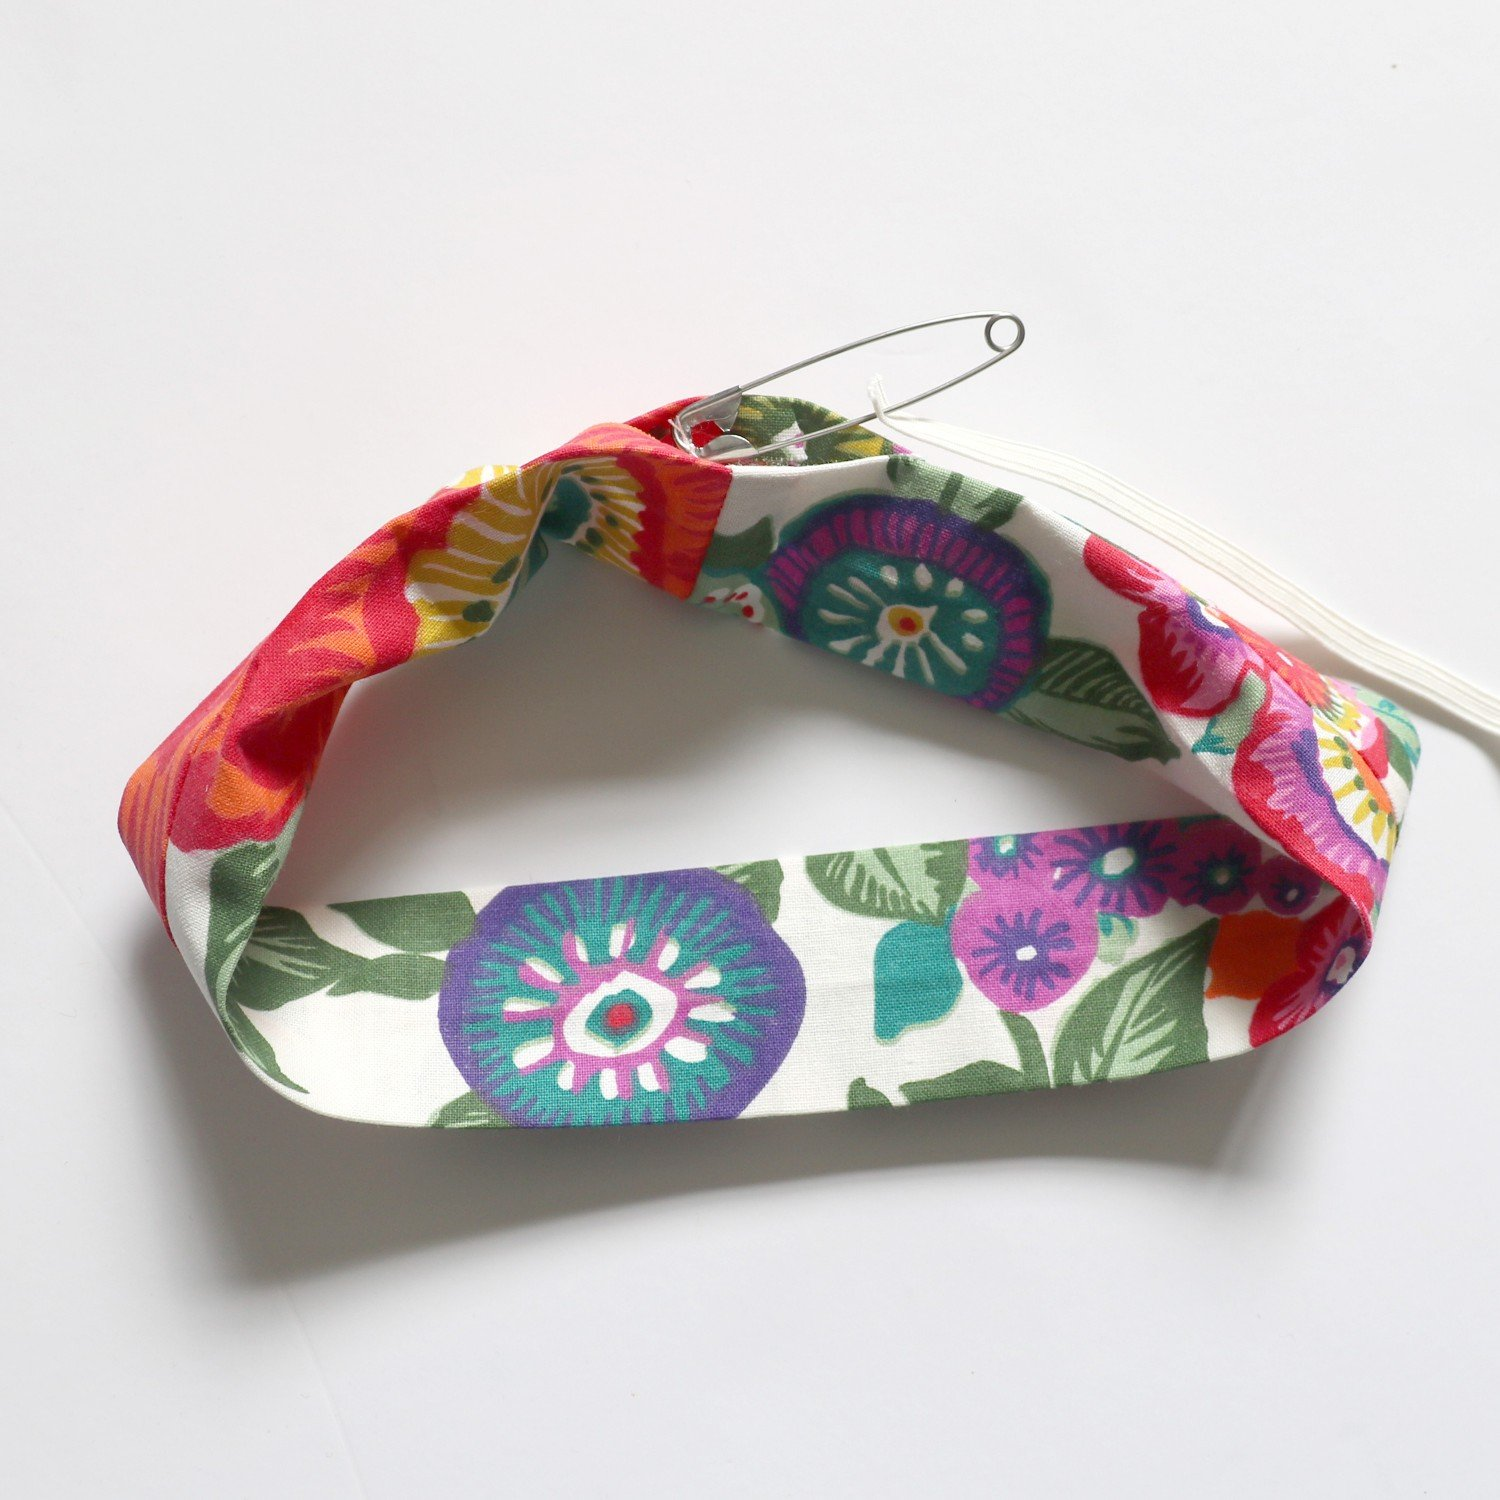 How to make a scrunchie from Bobbins and buttons